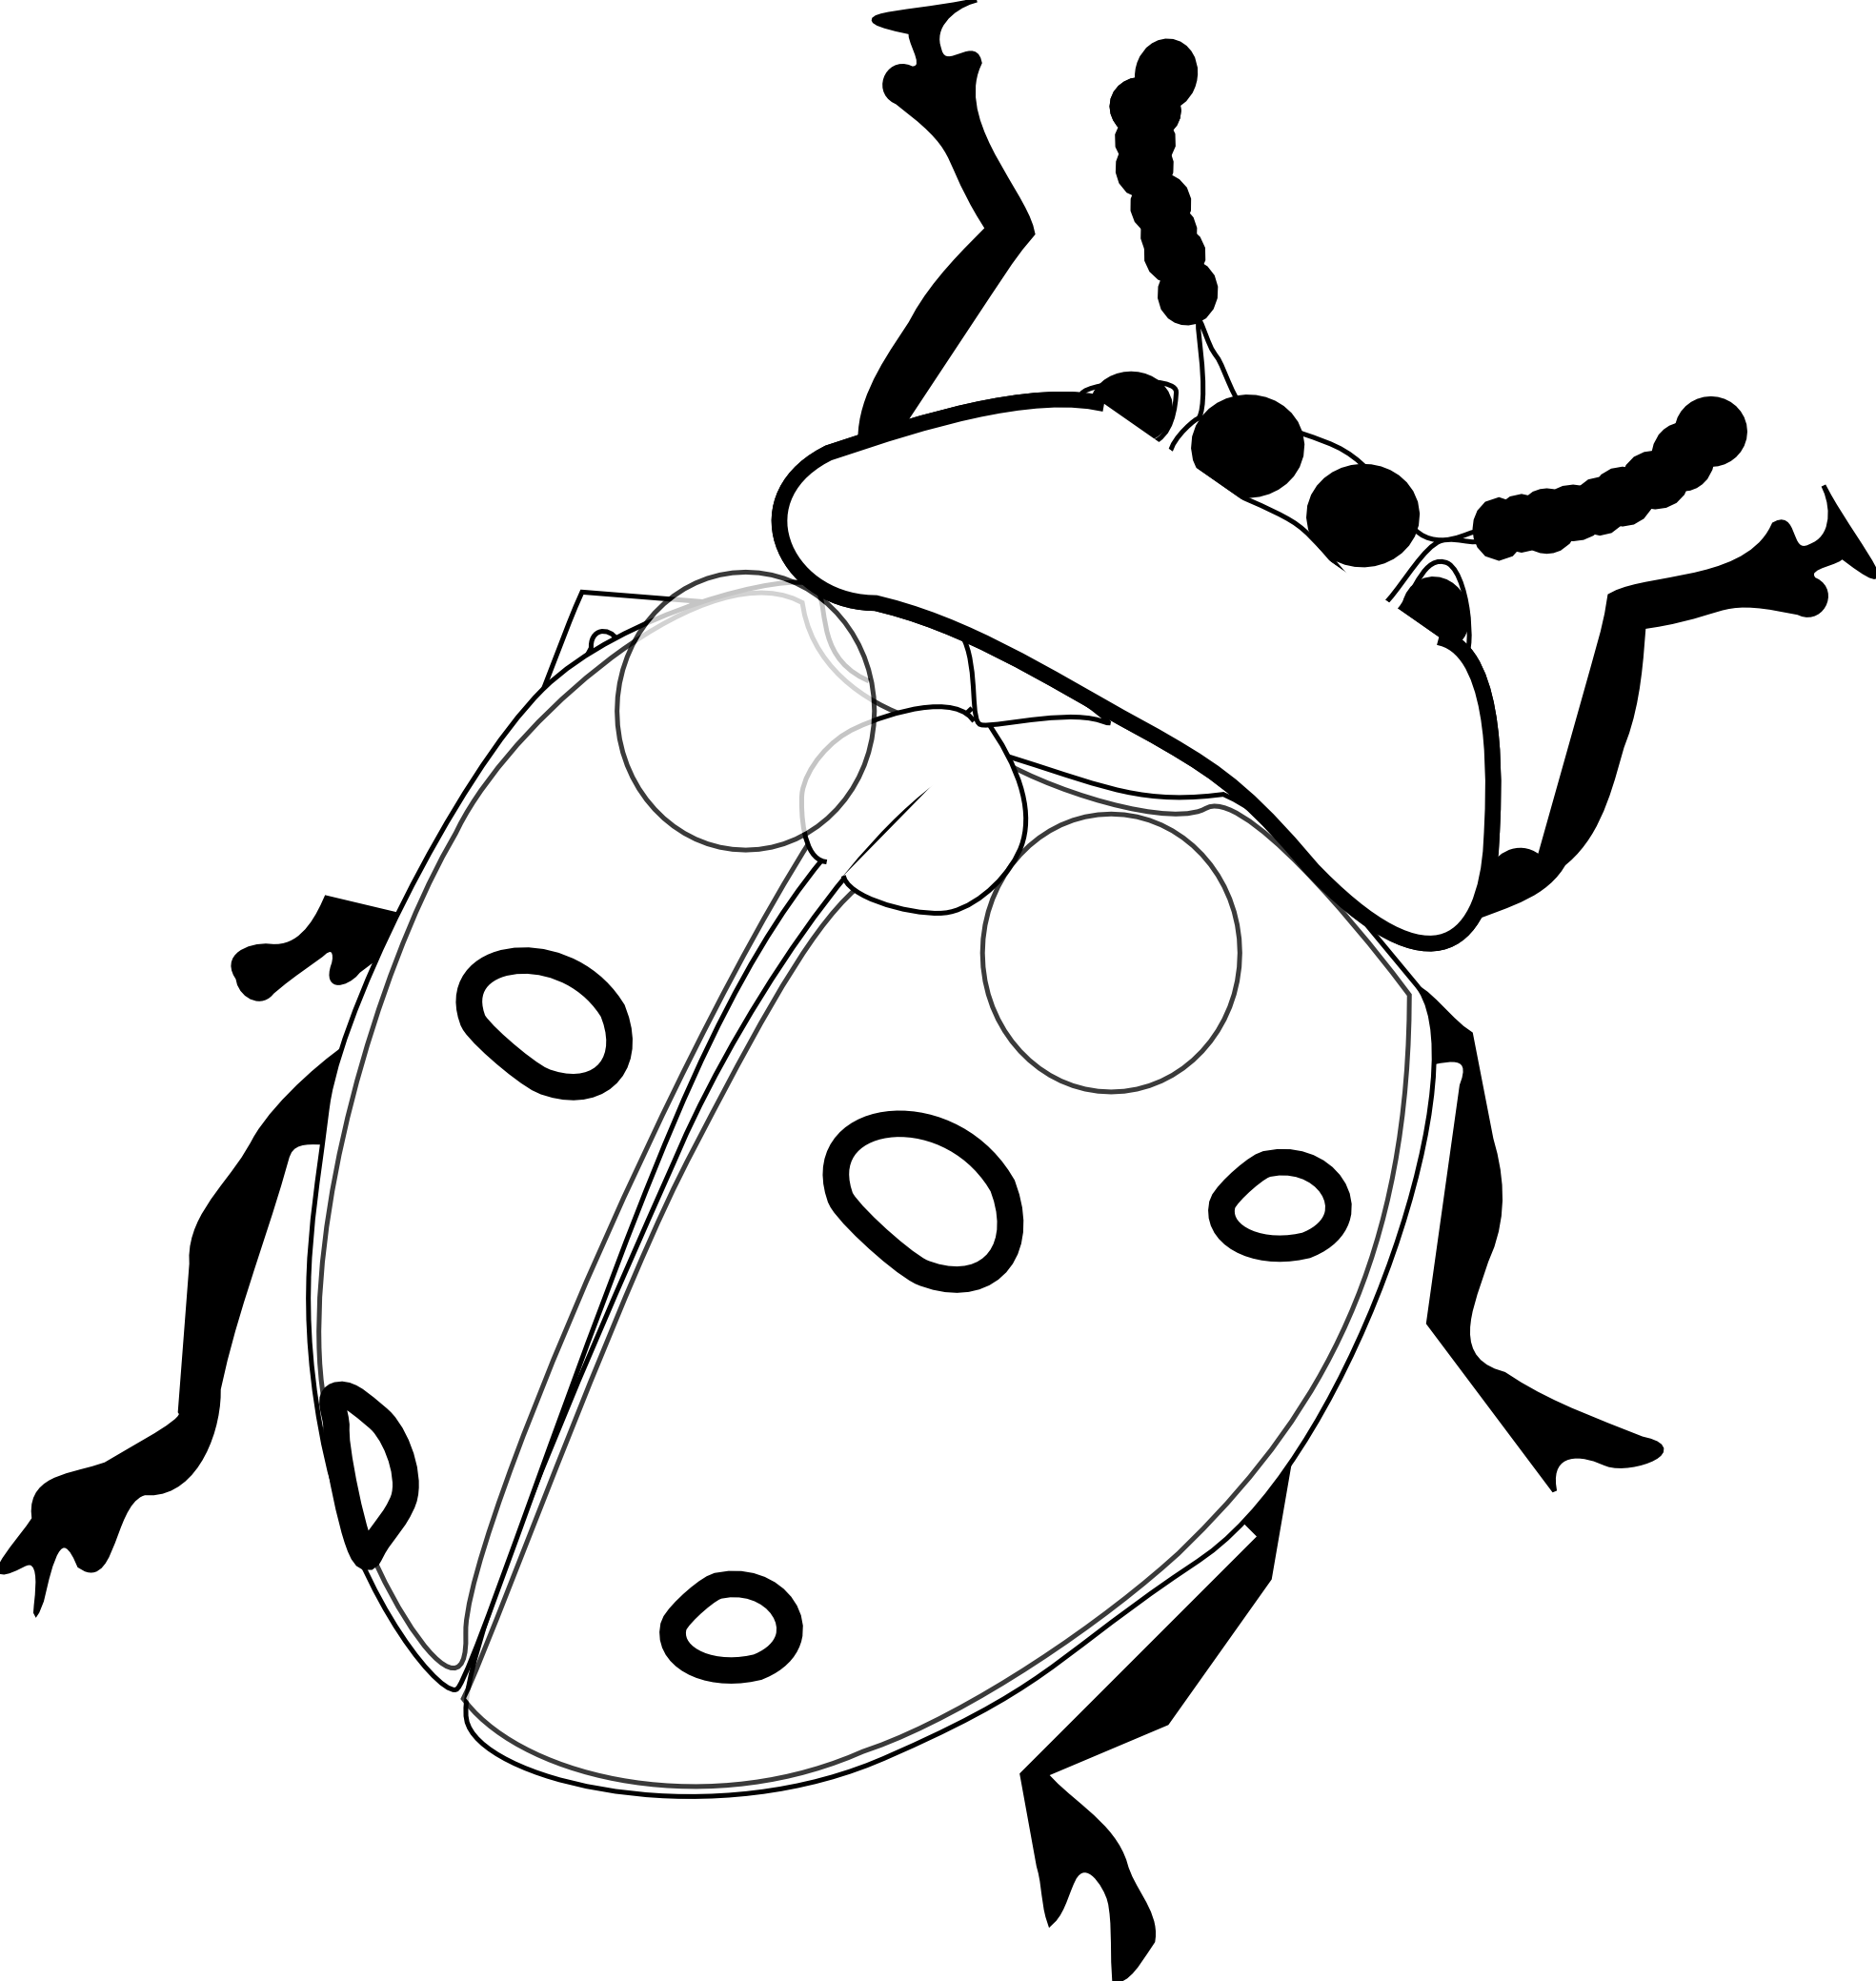 Ladybug clipart sketch. Drawing black and white